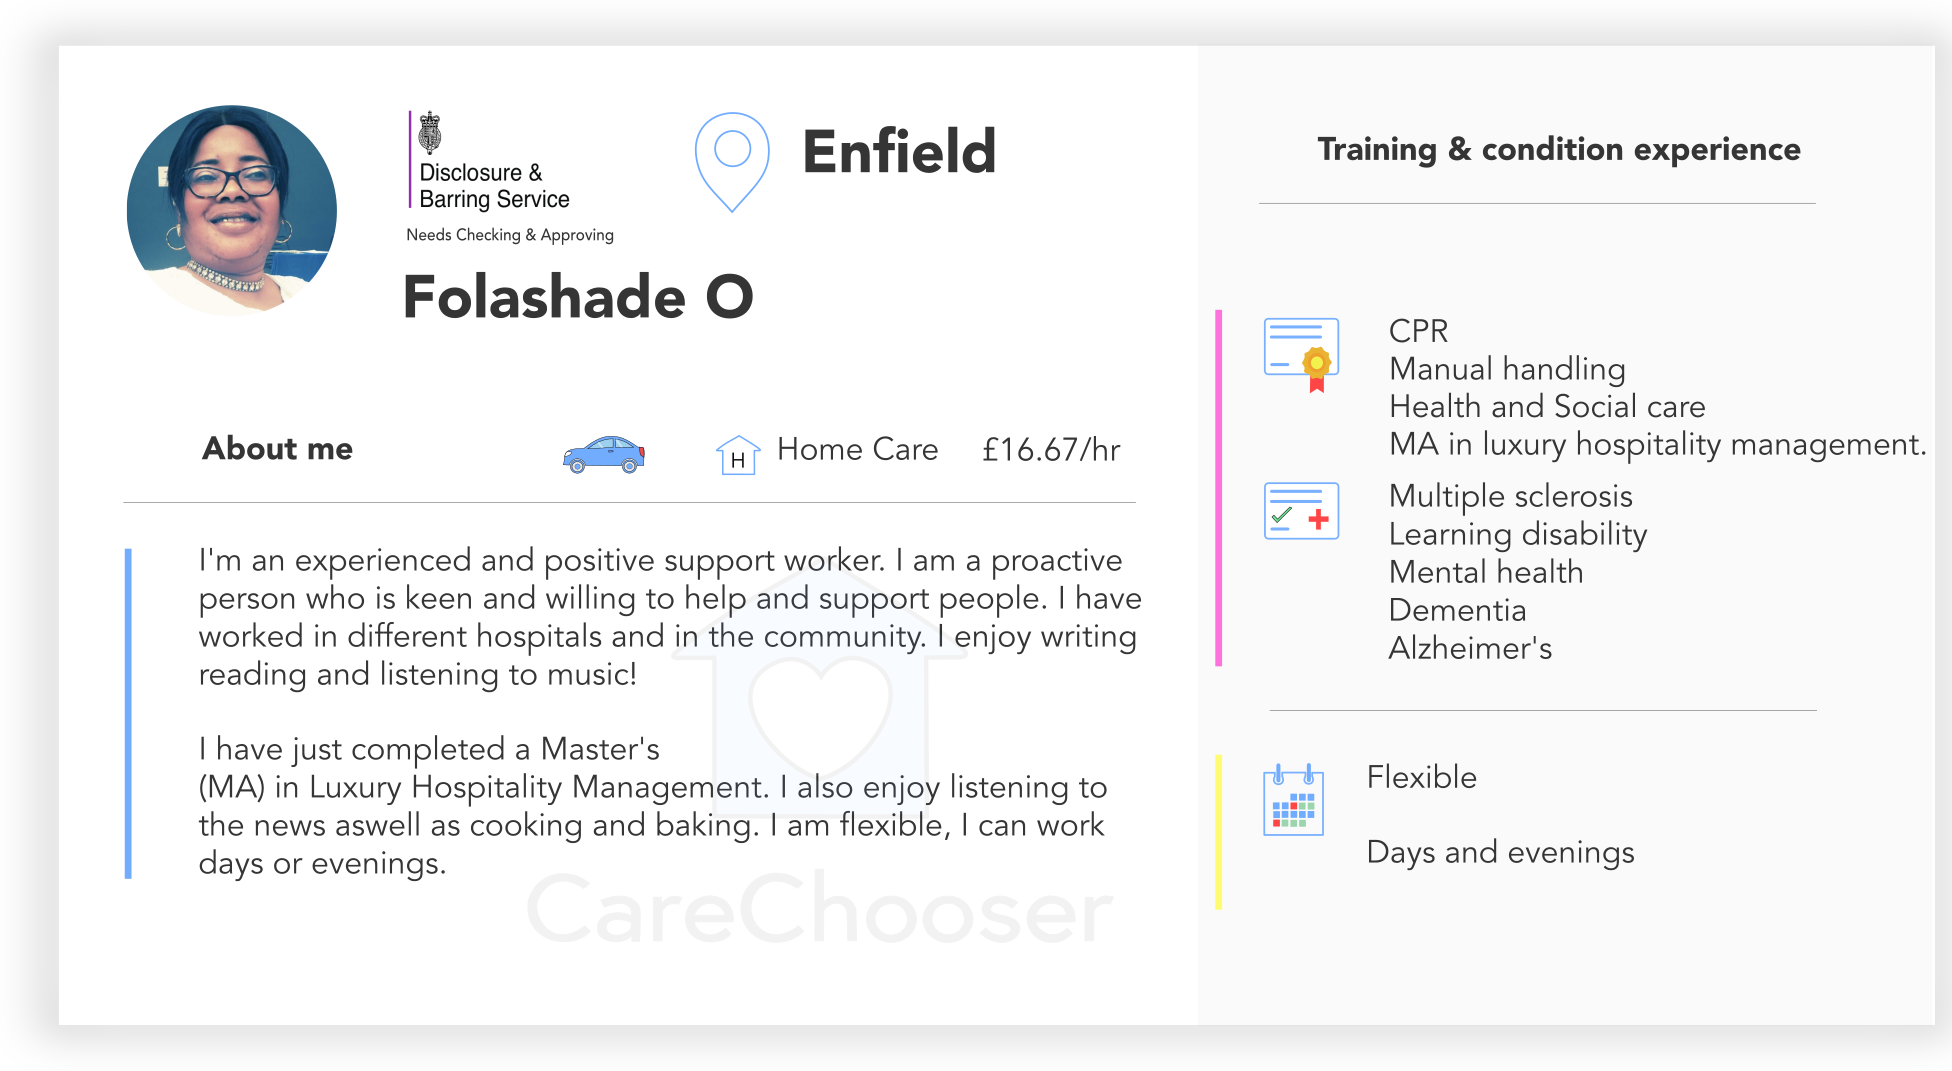 Folashade2 - home care - Enfield.png